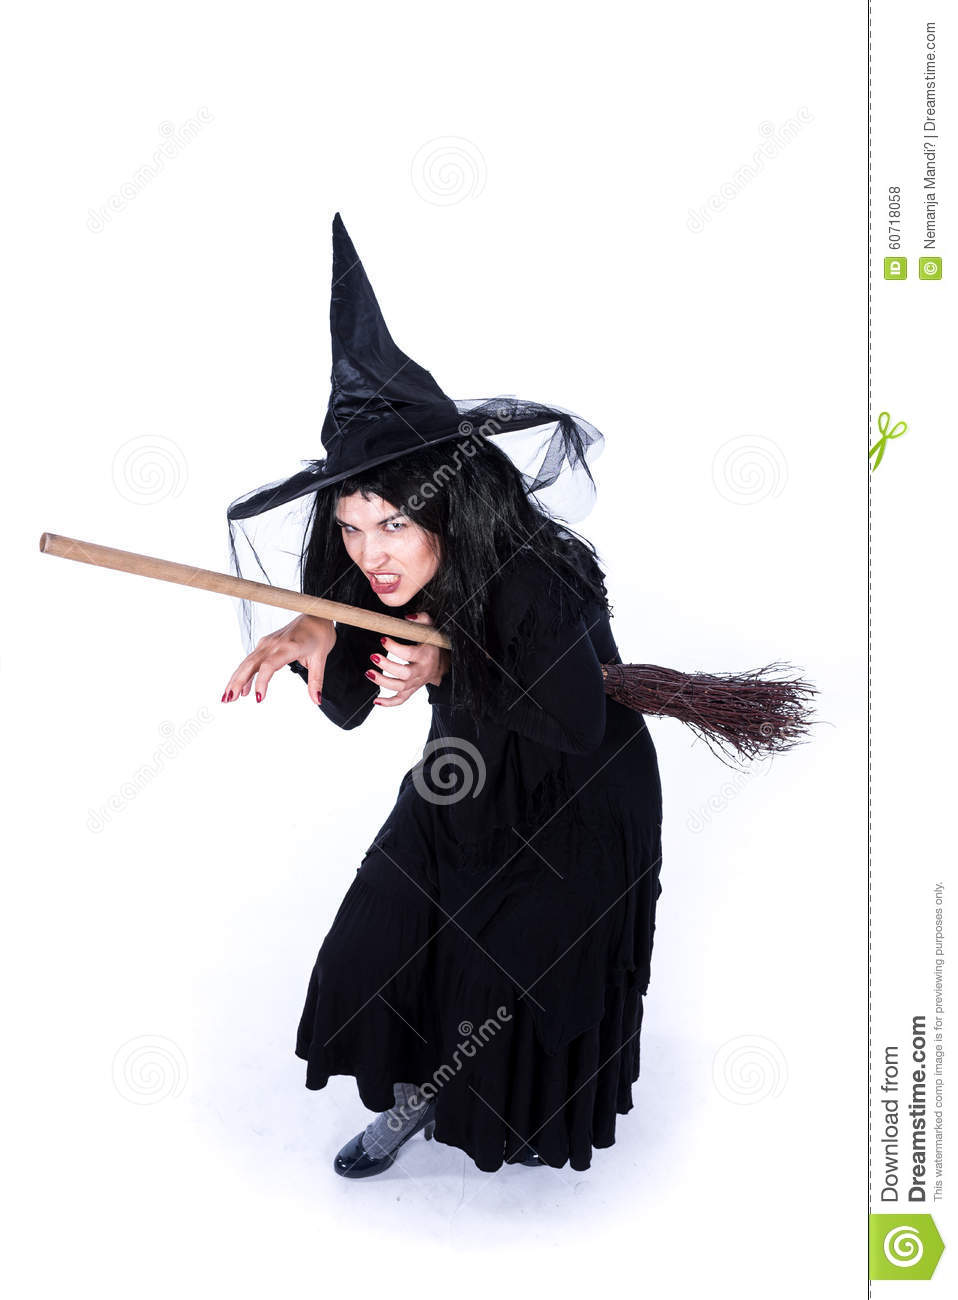 Creepy Evil Witch With Broom Stock Photo - Image: 60718058